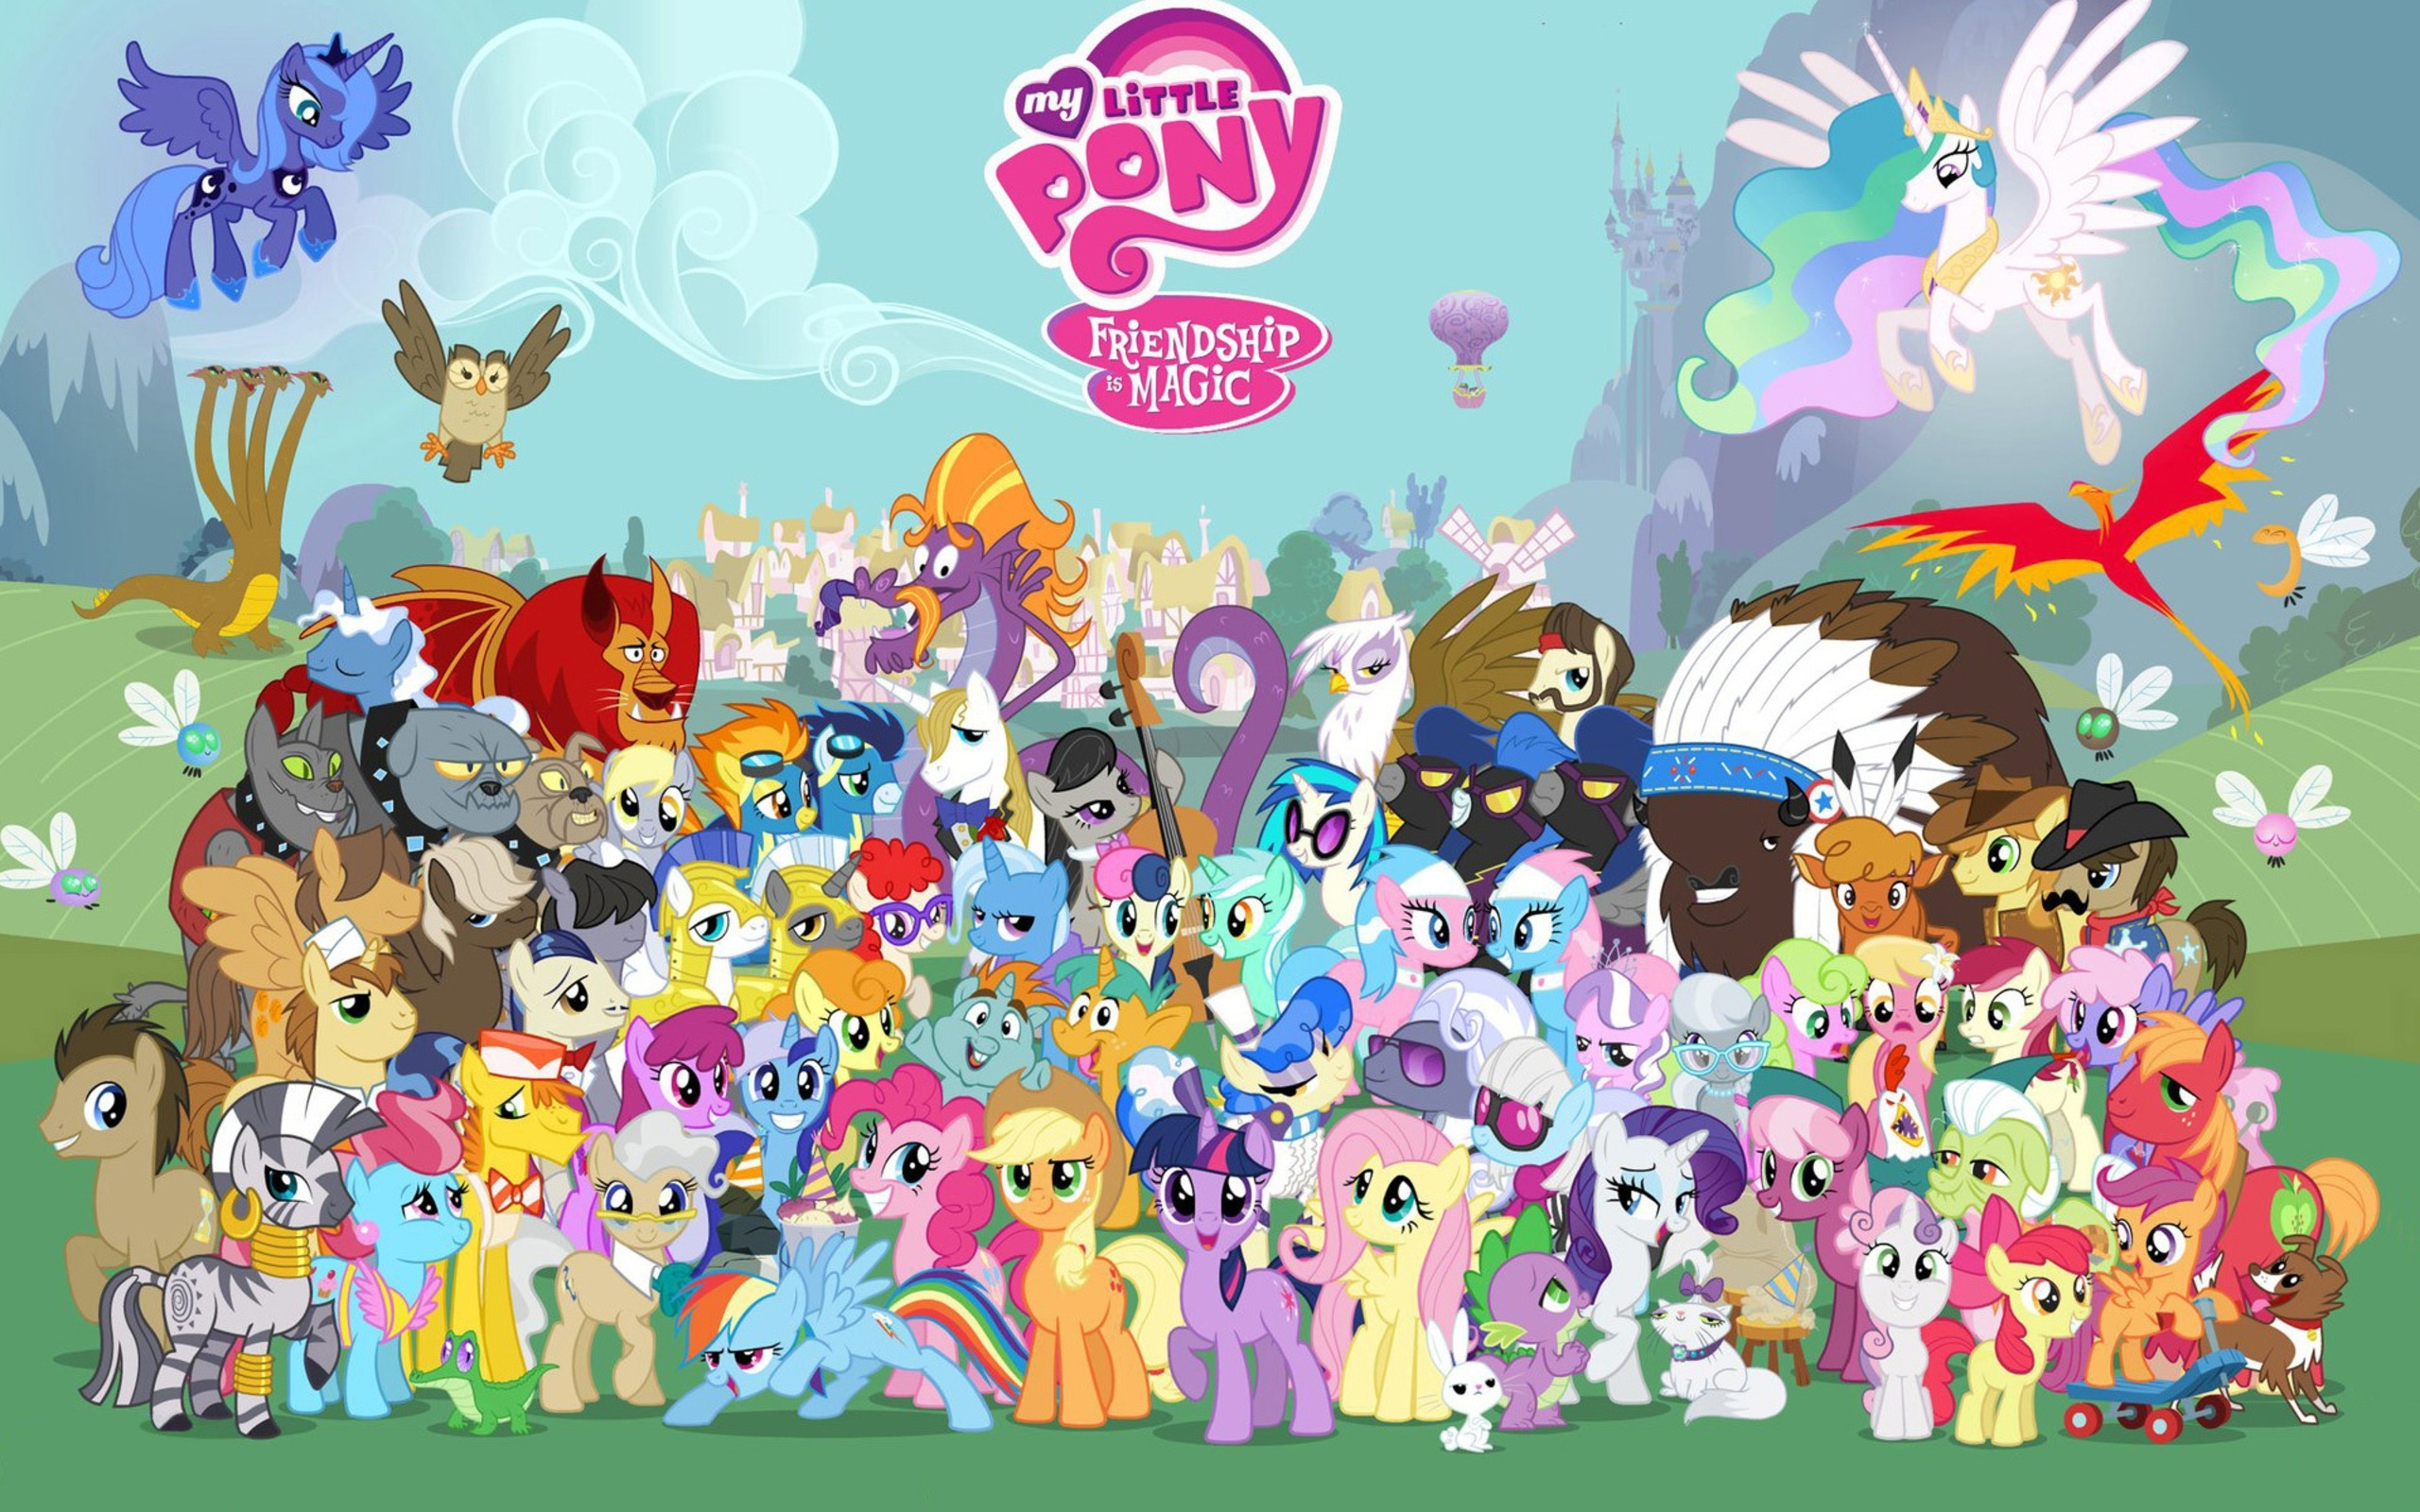 772 my little pony: friendship is magic hd wallpapers | background